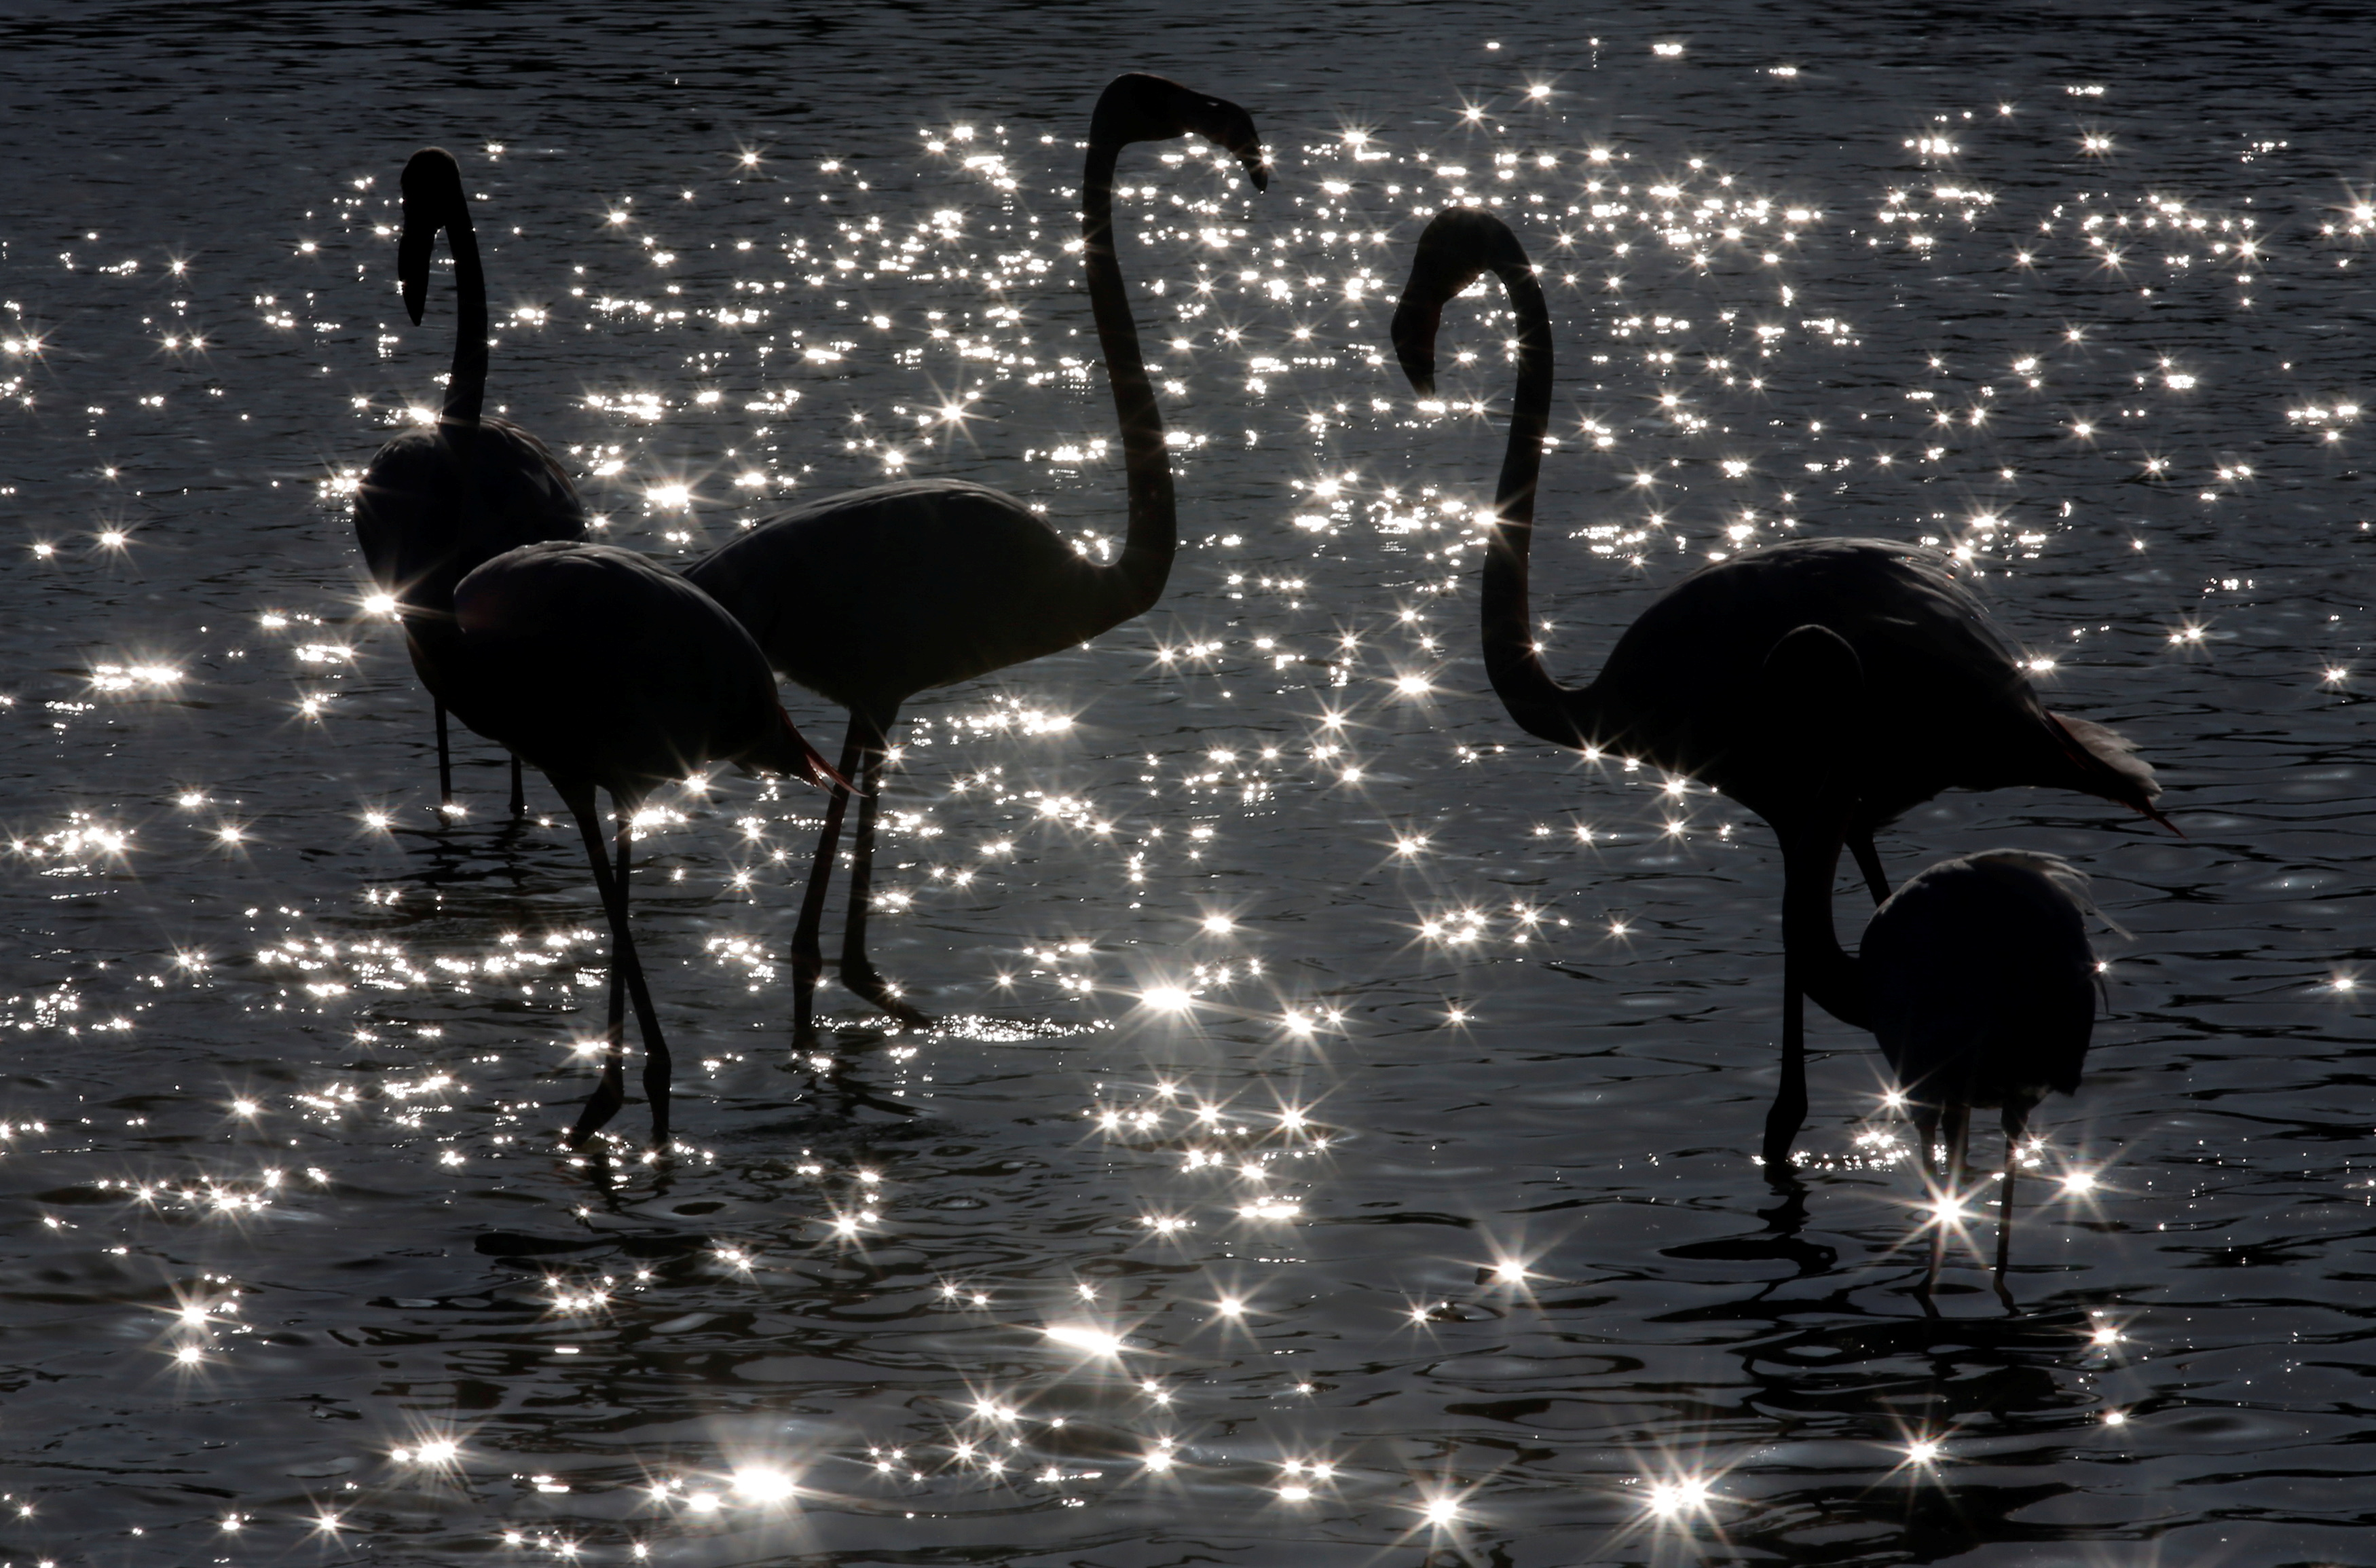 Sunlight sparkles off the water's surface as pink flamingos gather in the Camargue regional natural park, near Arles, southern France, April 12, 2015. Situated in the delta of the Rhone River on the French Mediterranean coast, classified by UNESCO, the Camargue Biosphere Reserve is made up of a mosaic of lagoons of fresh, brackish and saline wetlands, one of the most important in Europe. The Camargue covers an area of over 930 km (360 square miles) with an exceptional biological diversity and home to unique breeds of horses and bulls, and more than 400 species of birds including pink flamingos.  The marshy land could be impacted by climate changes and coastal erosion in the future as one scientific model for the year  2100 predicts the ocean level rising 50 cm above current levels, and another estimating a 1 metre level rise.  Picture taken April 12, 2015.   REUTERS/Jean-Paul Pelissier/File Photo